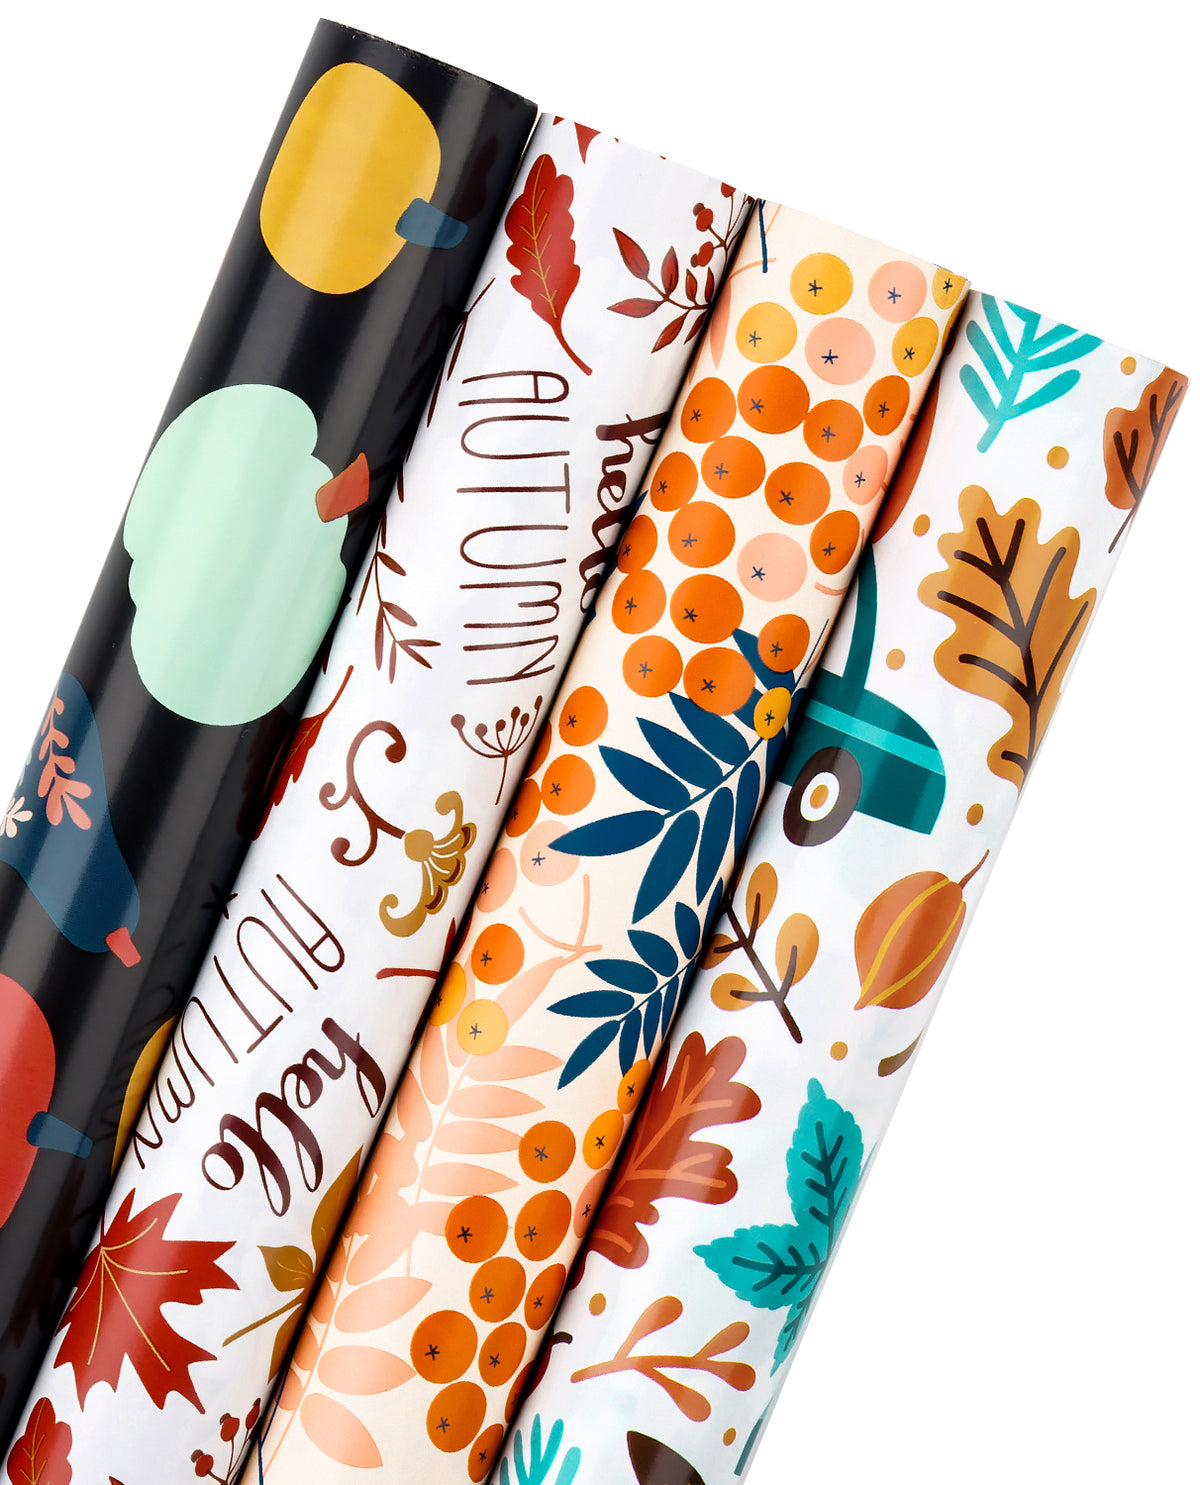 Wrapaholic- Maple-Leaf-and-Pumpkin Autumn-Design-Gift-Wrapping-Paper-Roll-4 Rolls-1